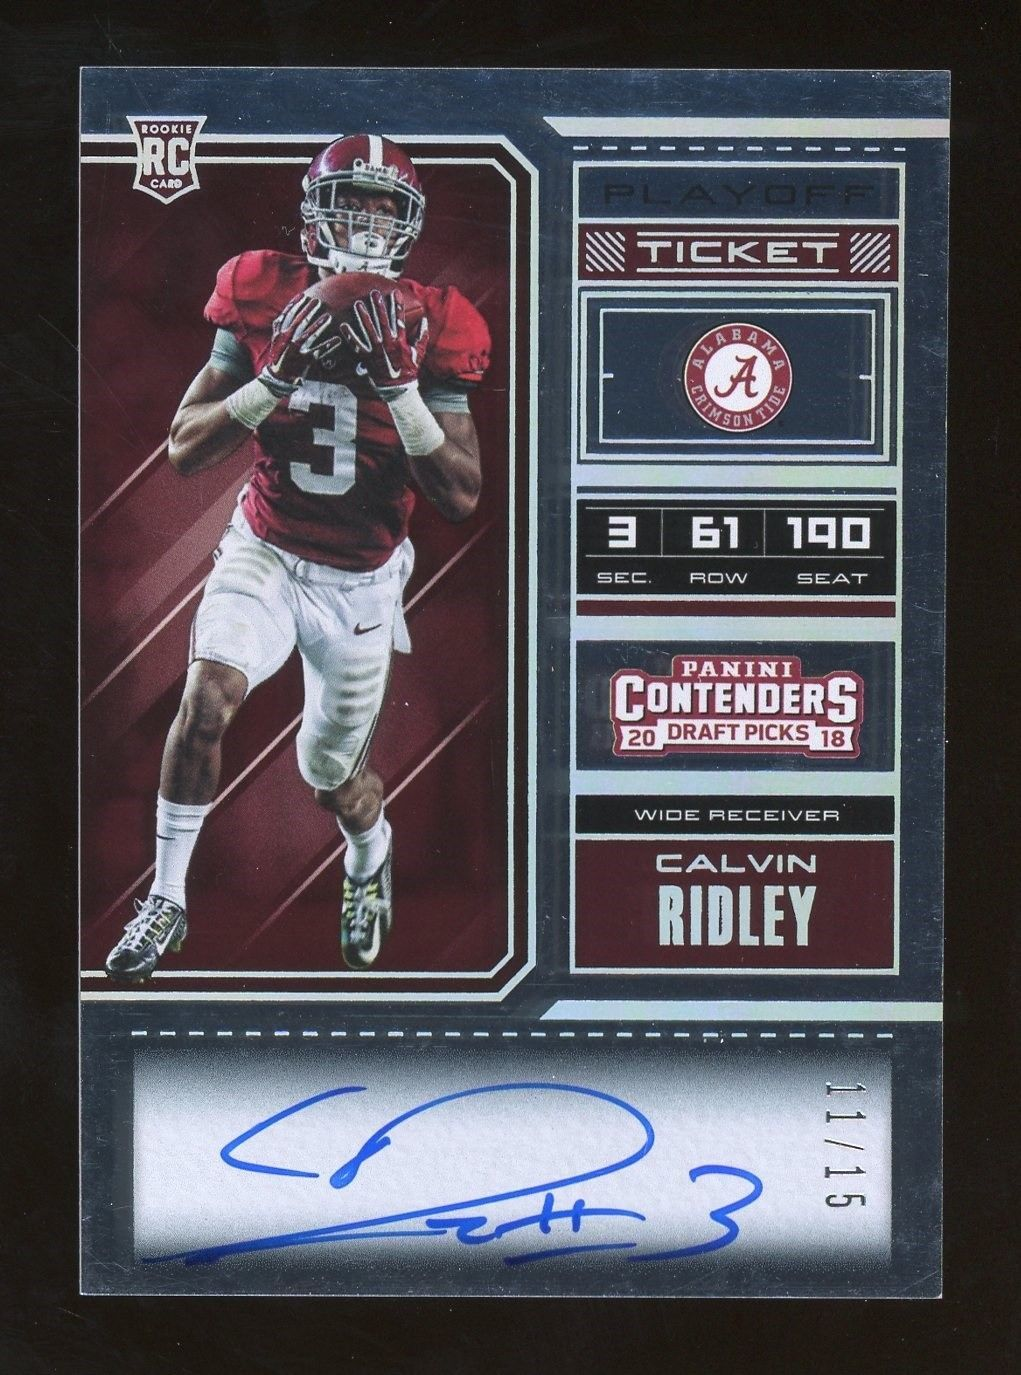 2018 Contenders Playoff Ticket Calvin Ridley Alabama Rc Rookie Auto 11 15 Footballcards Football Cards Calvin Sports Cards